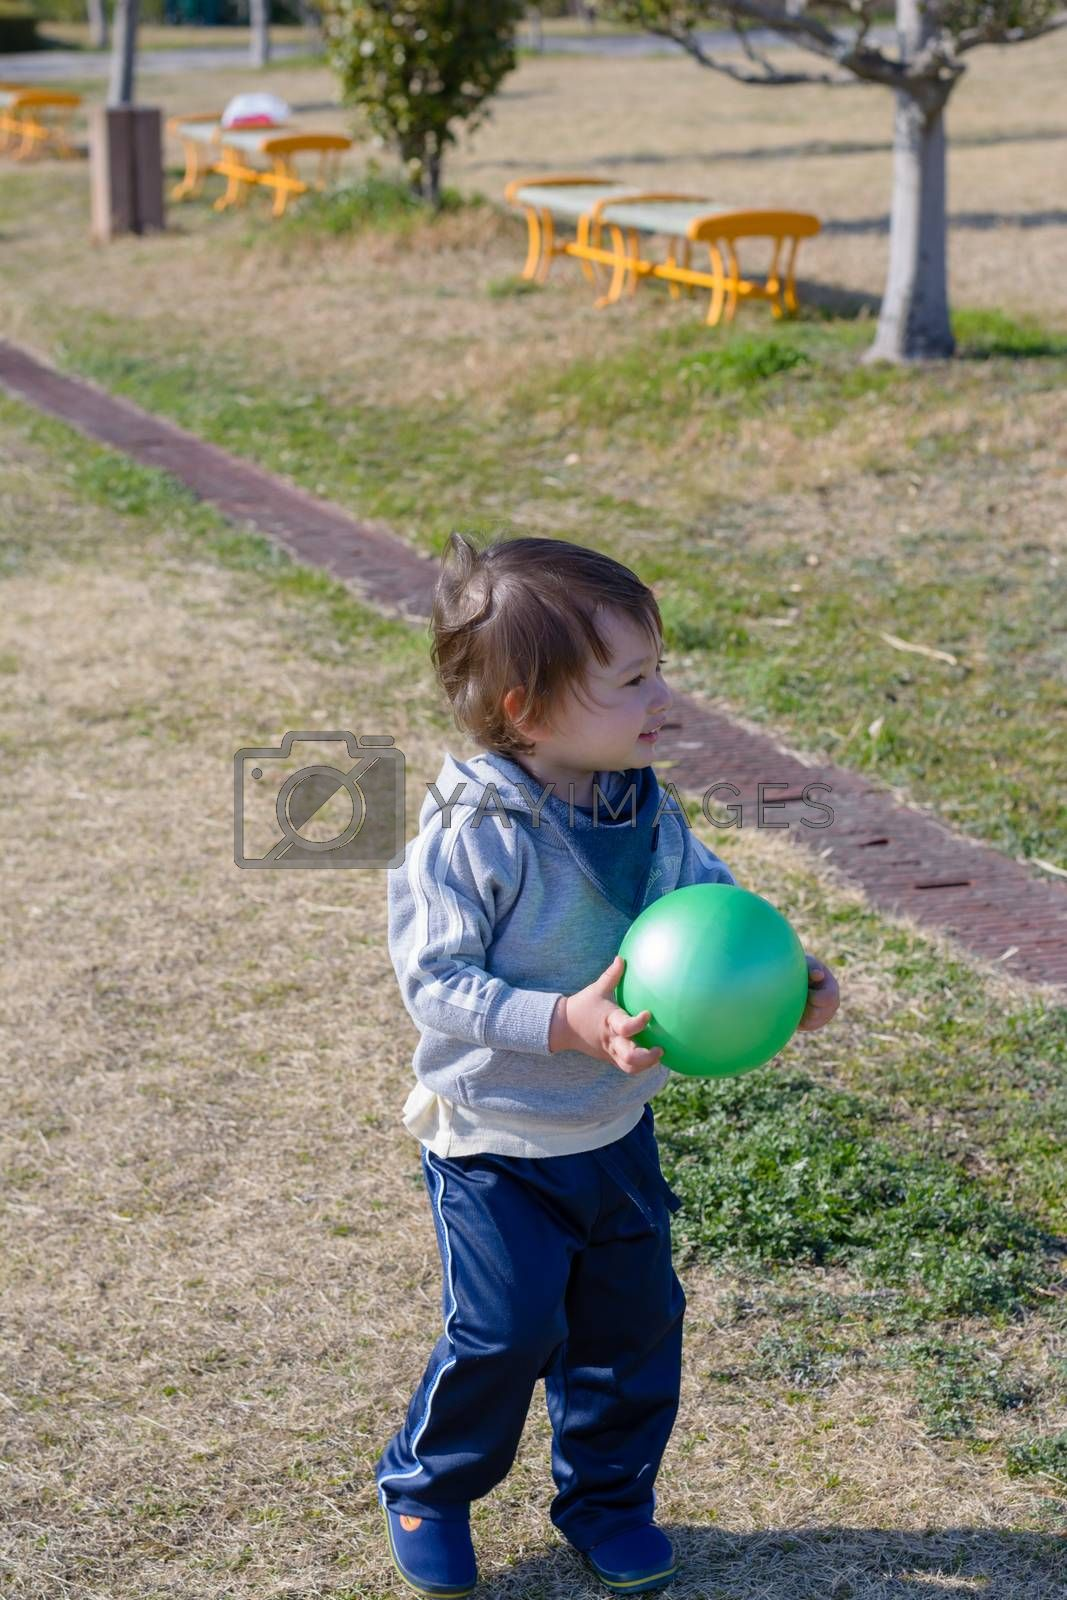 A 2 year old boy holding a ball and smiling at a playground.